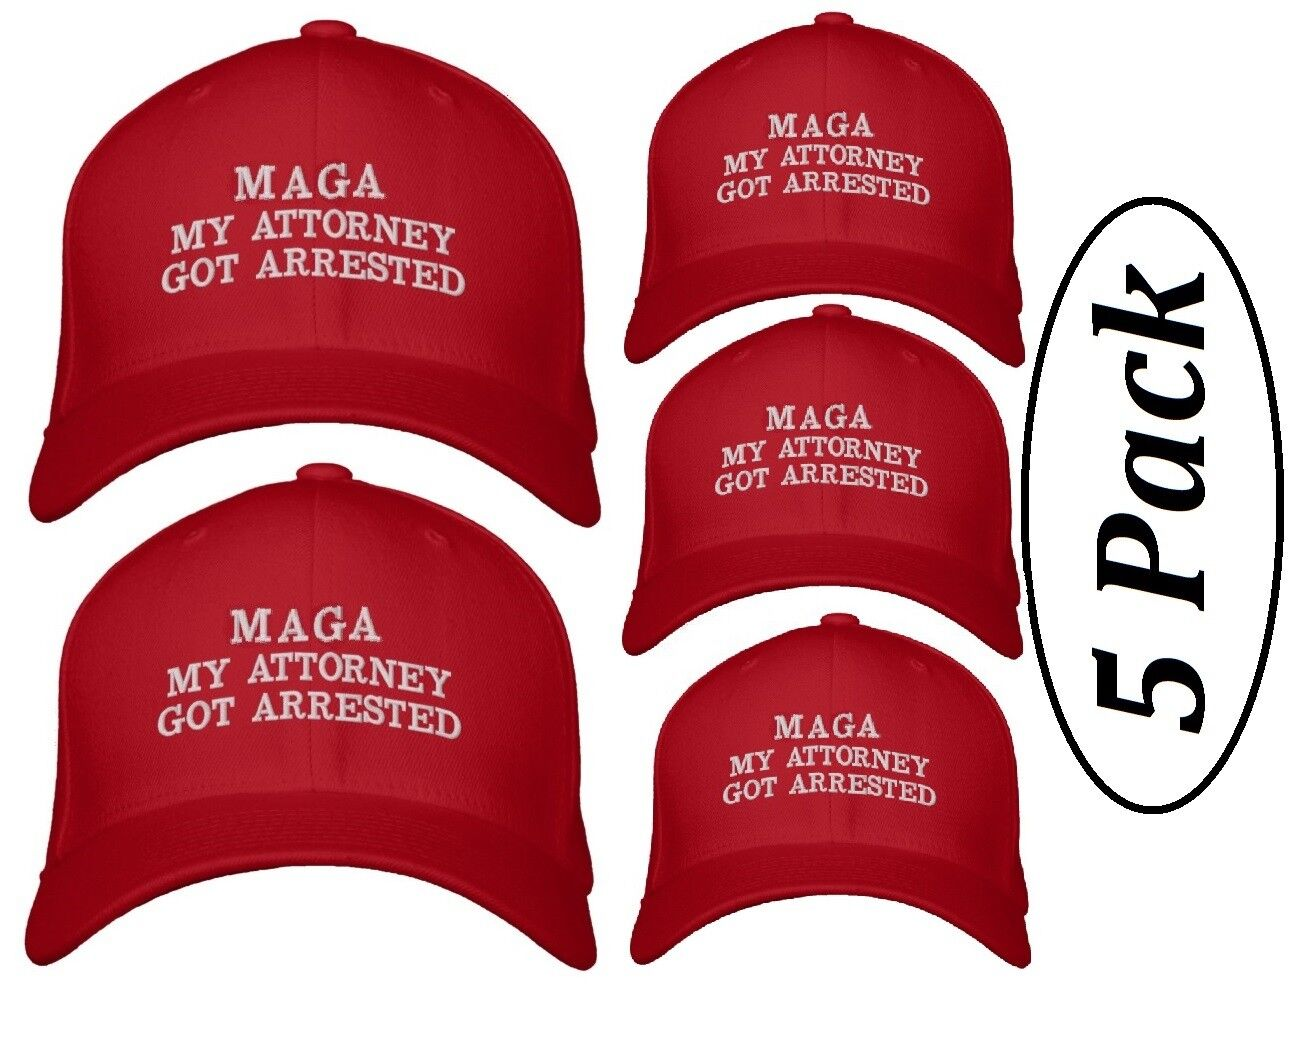 Funny Trump MAGA Clothing, Shoes & Accessories